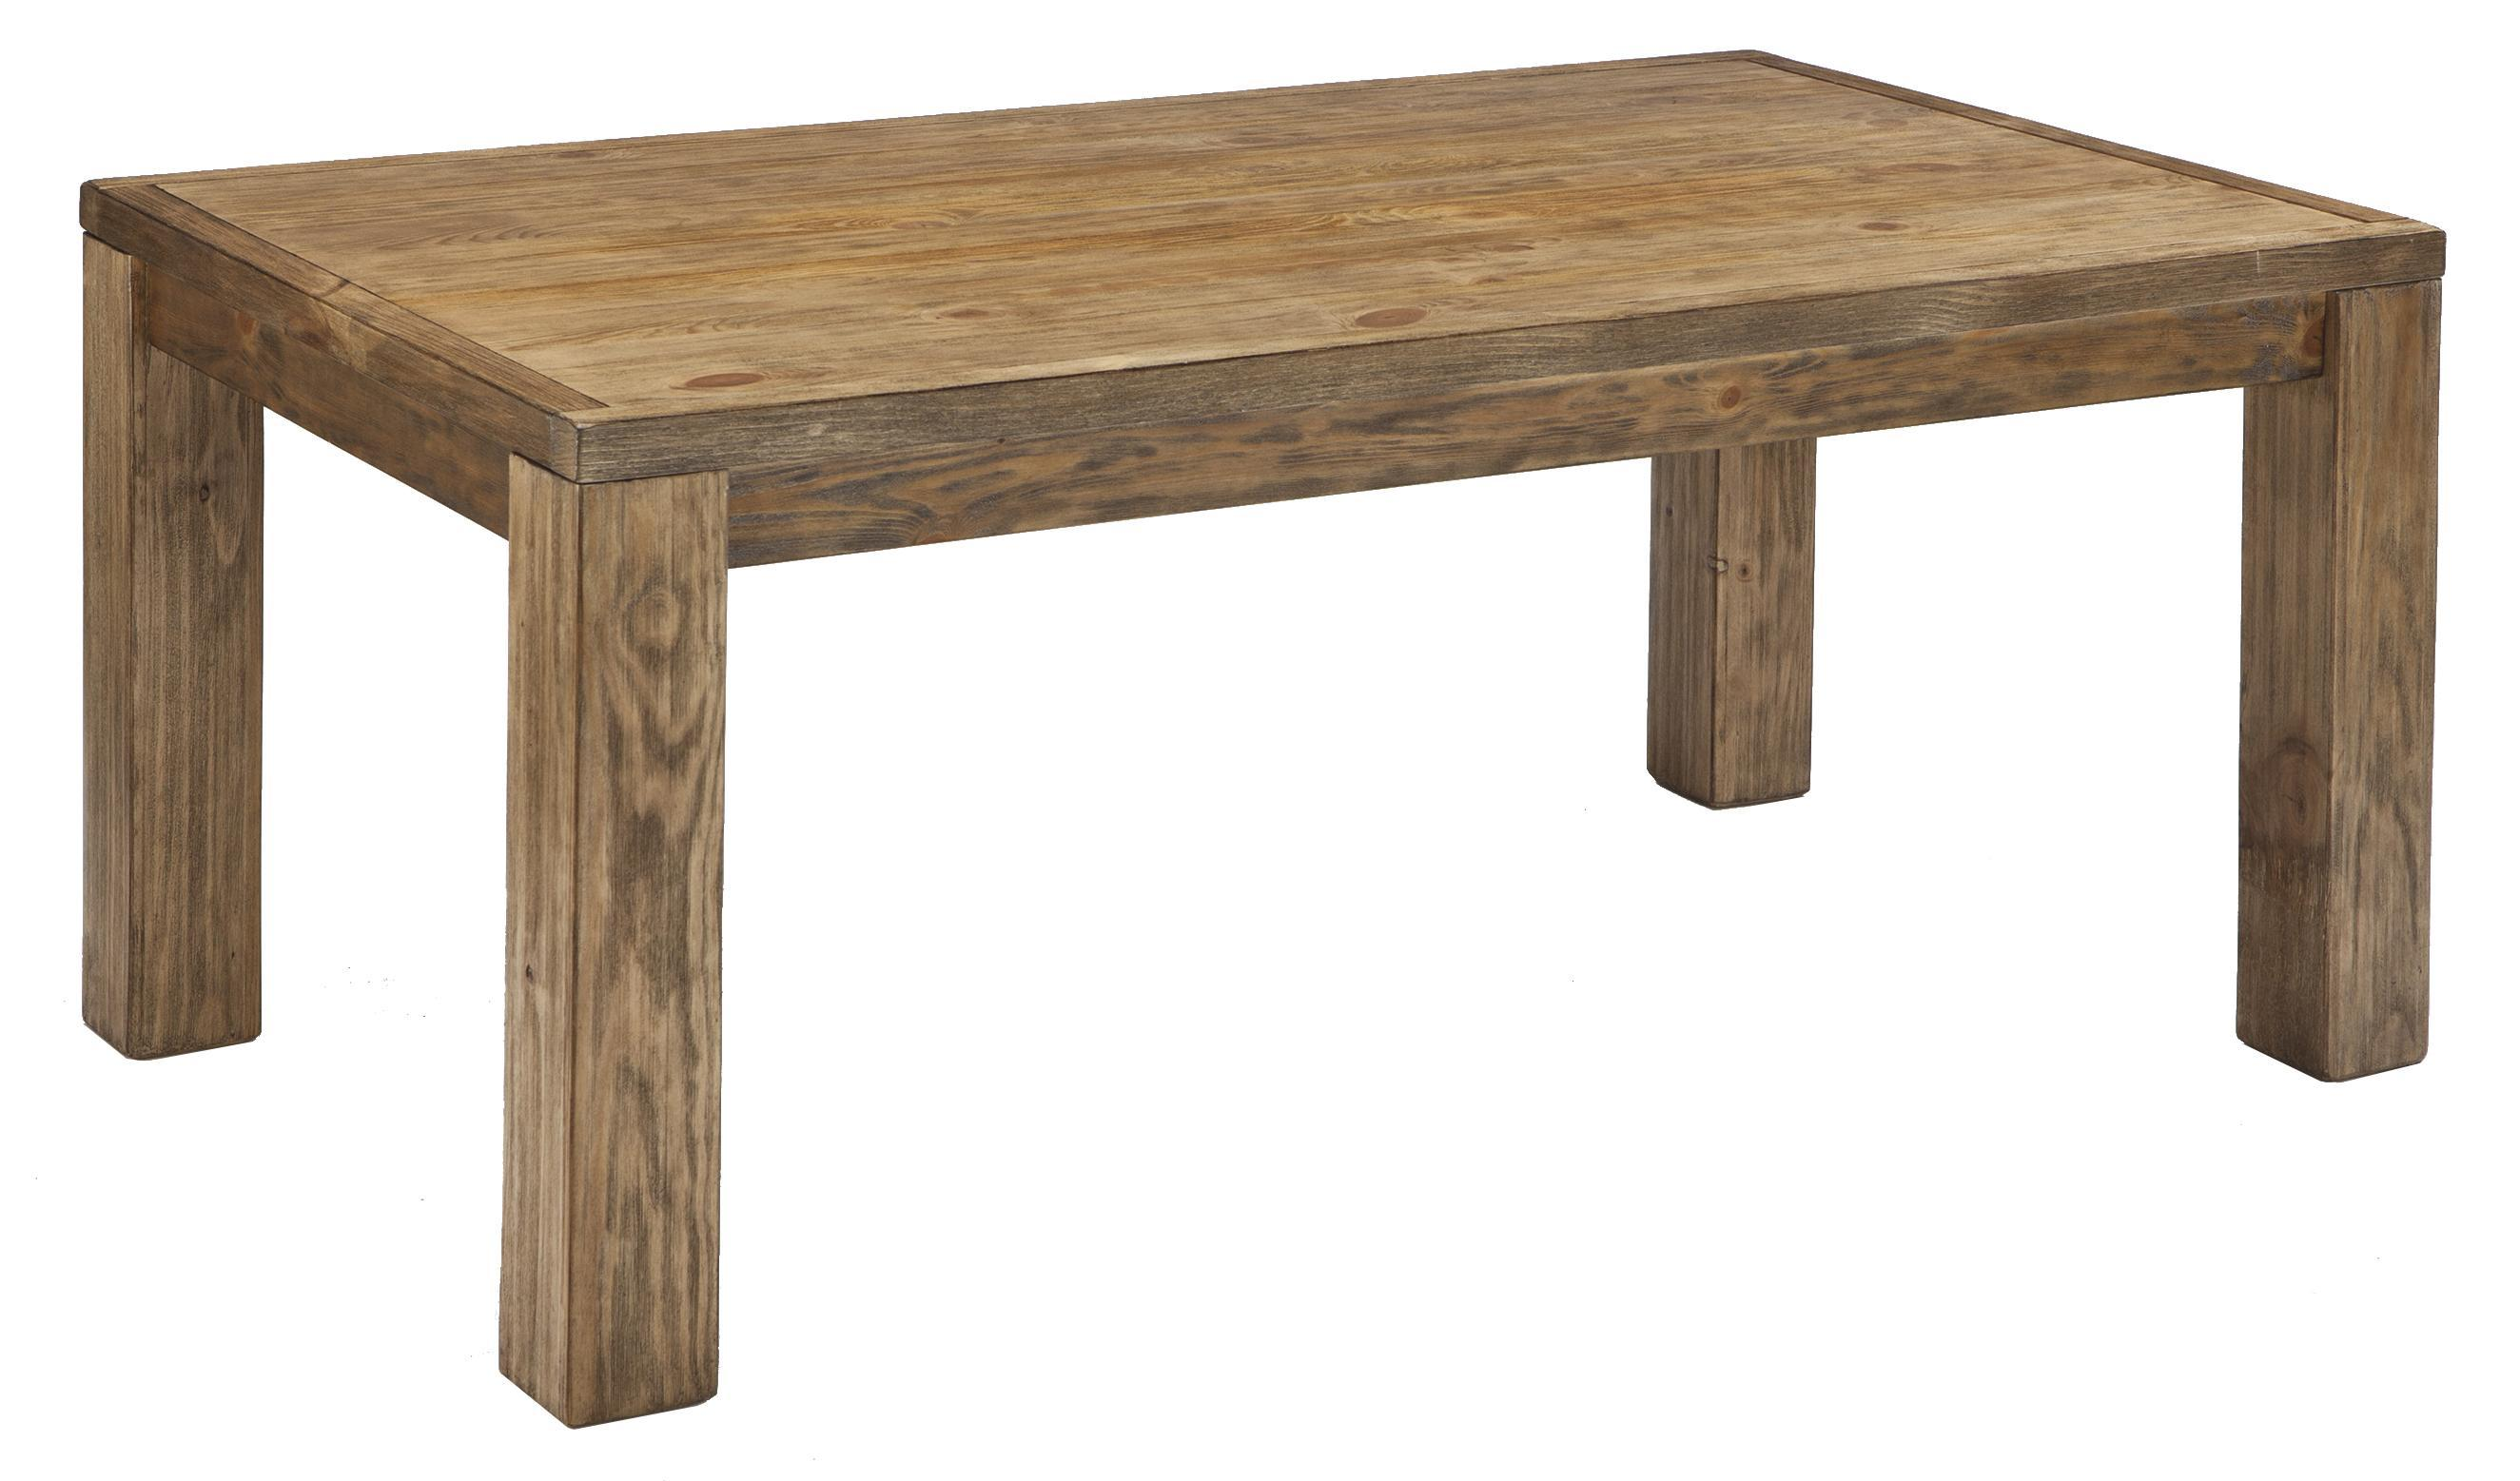 Country Style Dining Room Tables Furniture Dining Room Kitchen Dining Tables Rustic Pine Dining